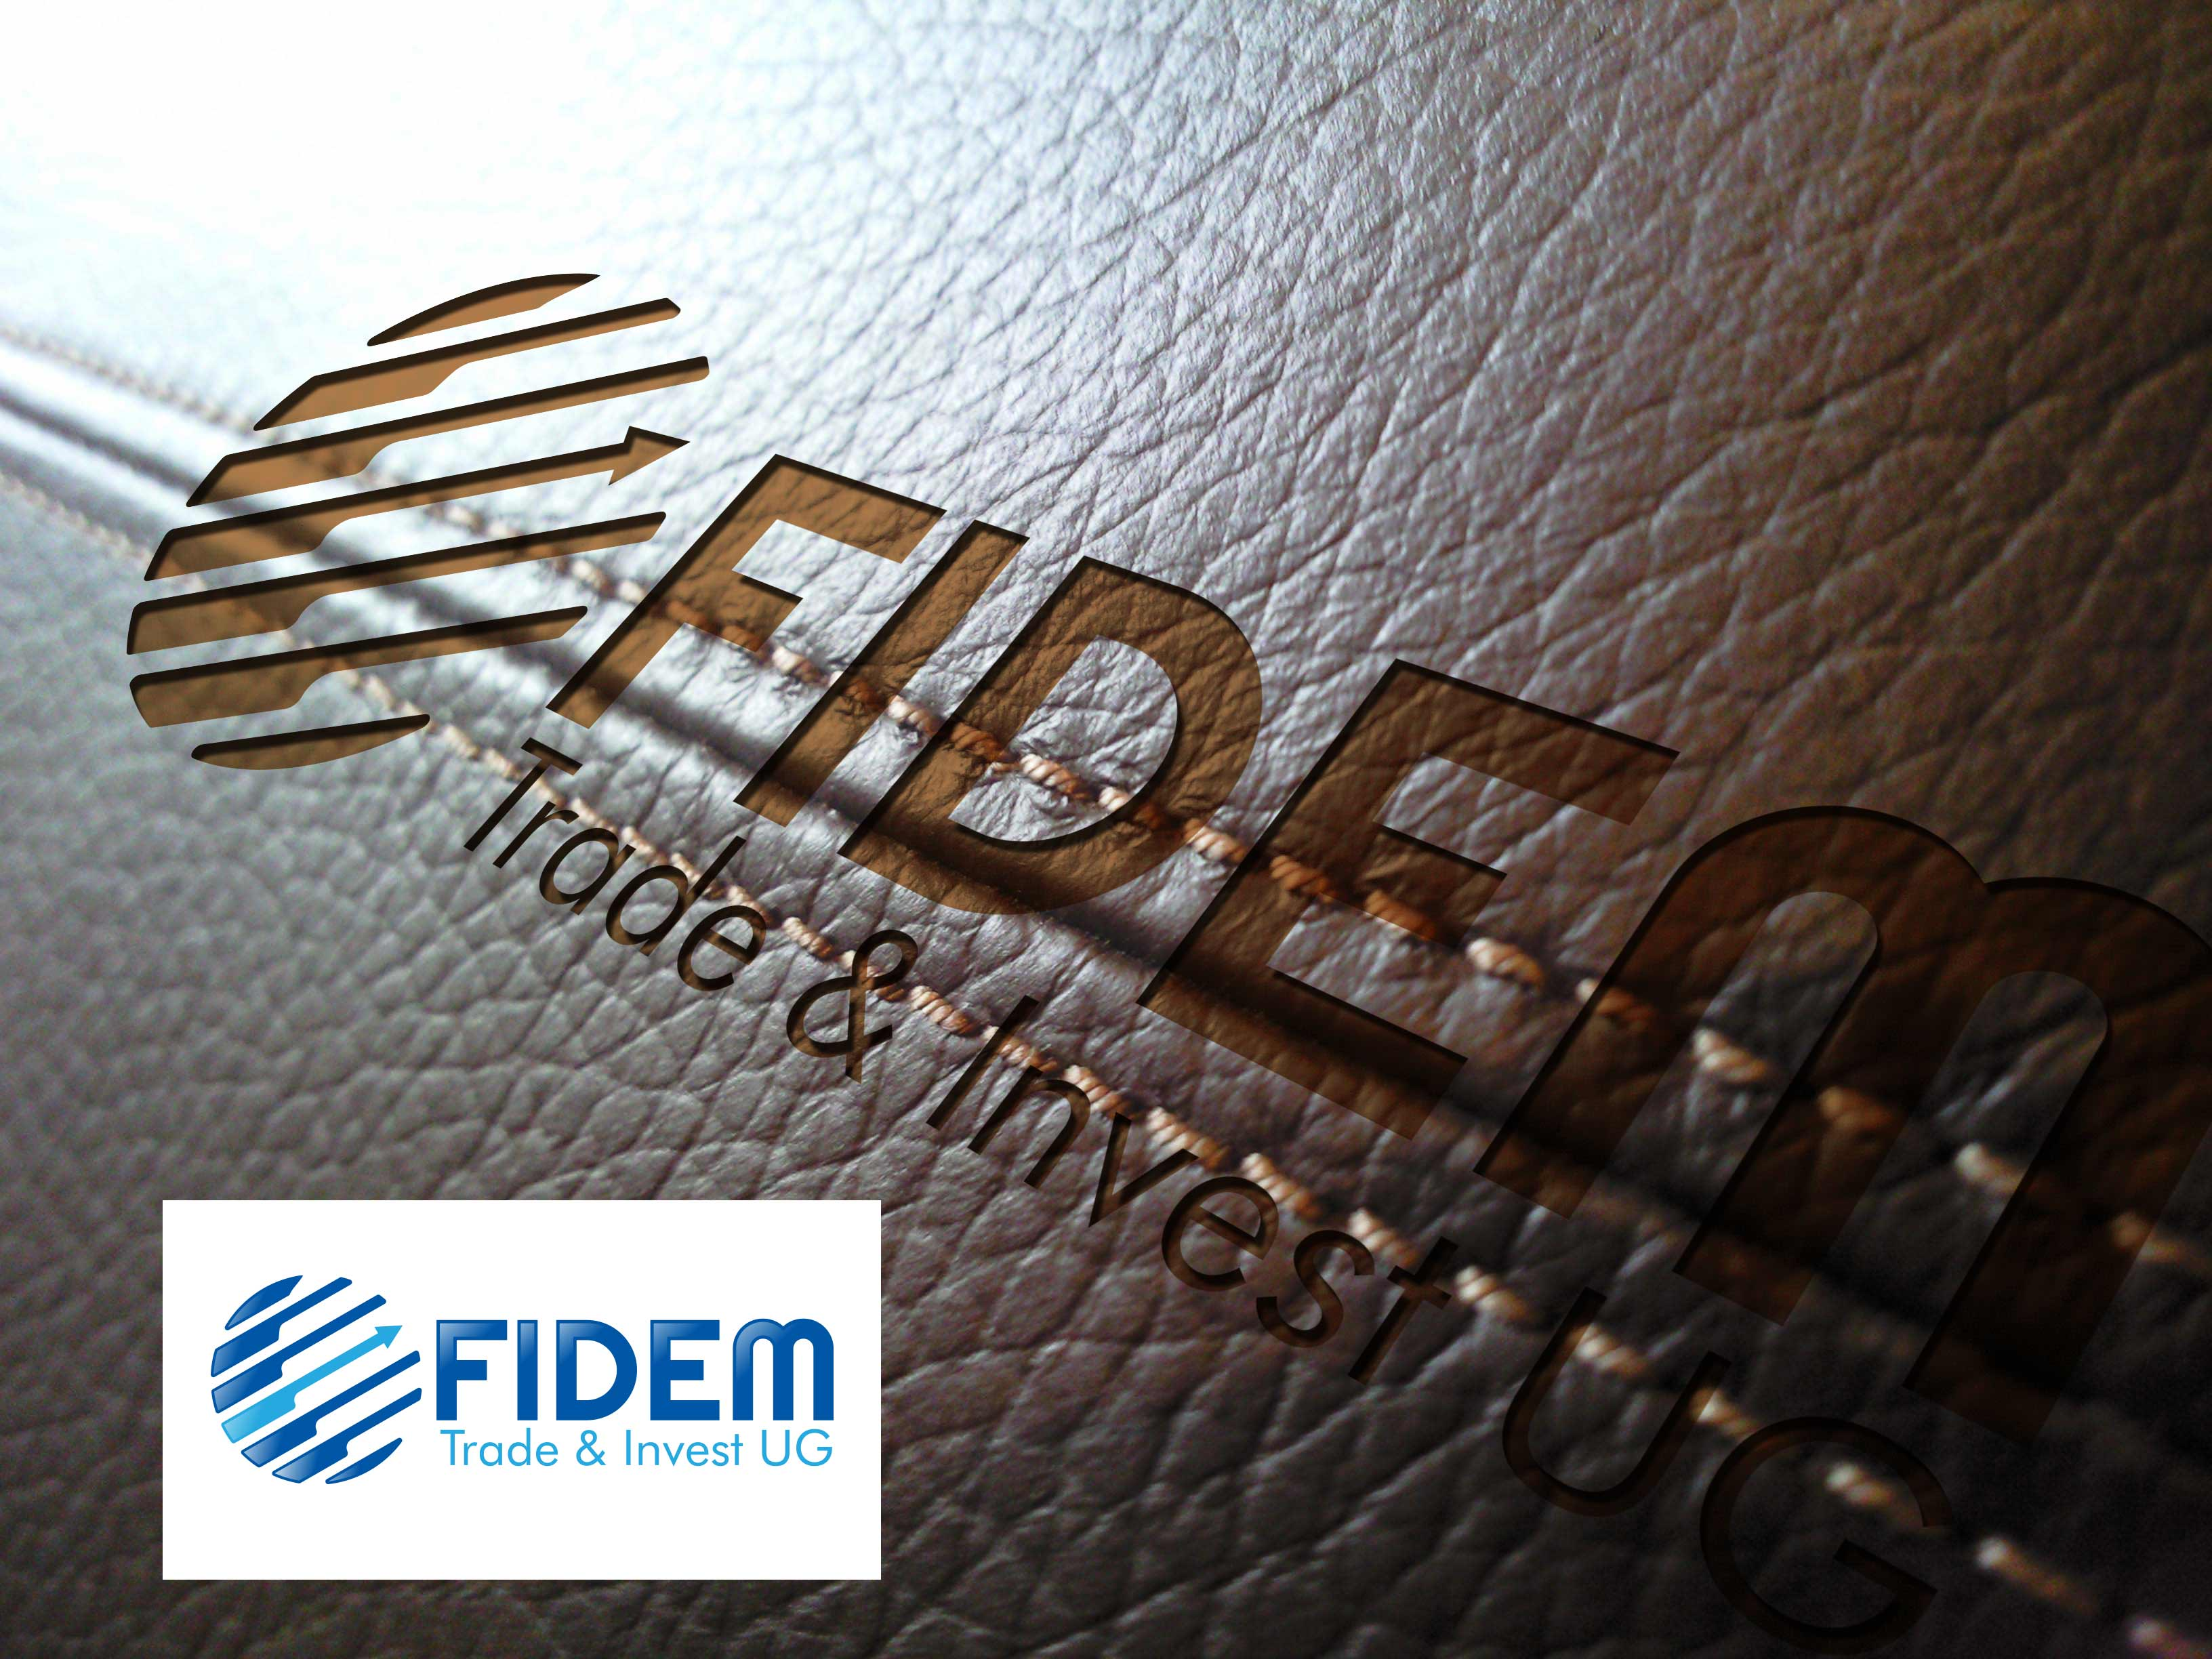 Logo Design by lagalag - Entry No. 259 in the Logo Design Contest Professional Logo Design for FIDEM Trade & Invest UG.